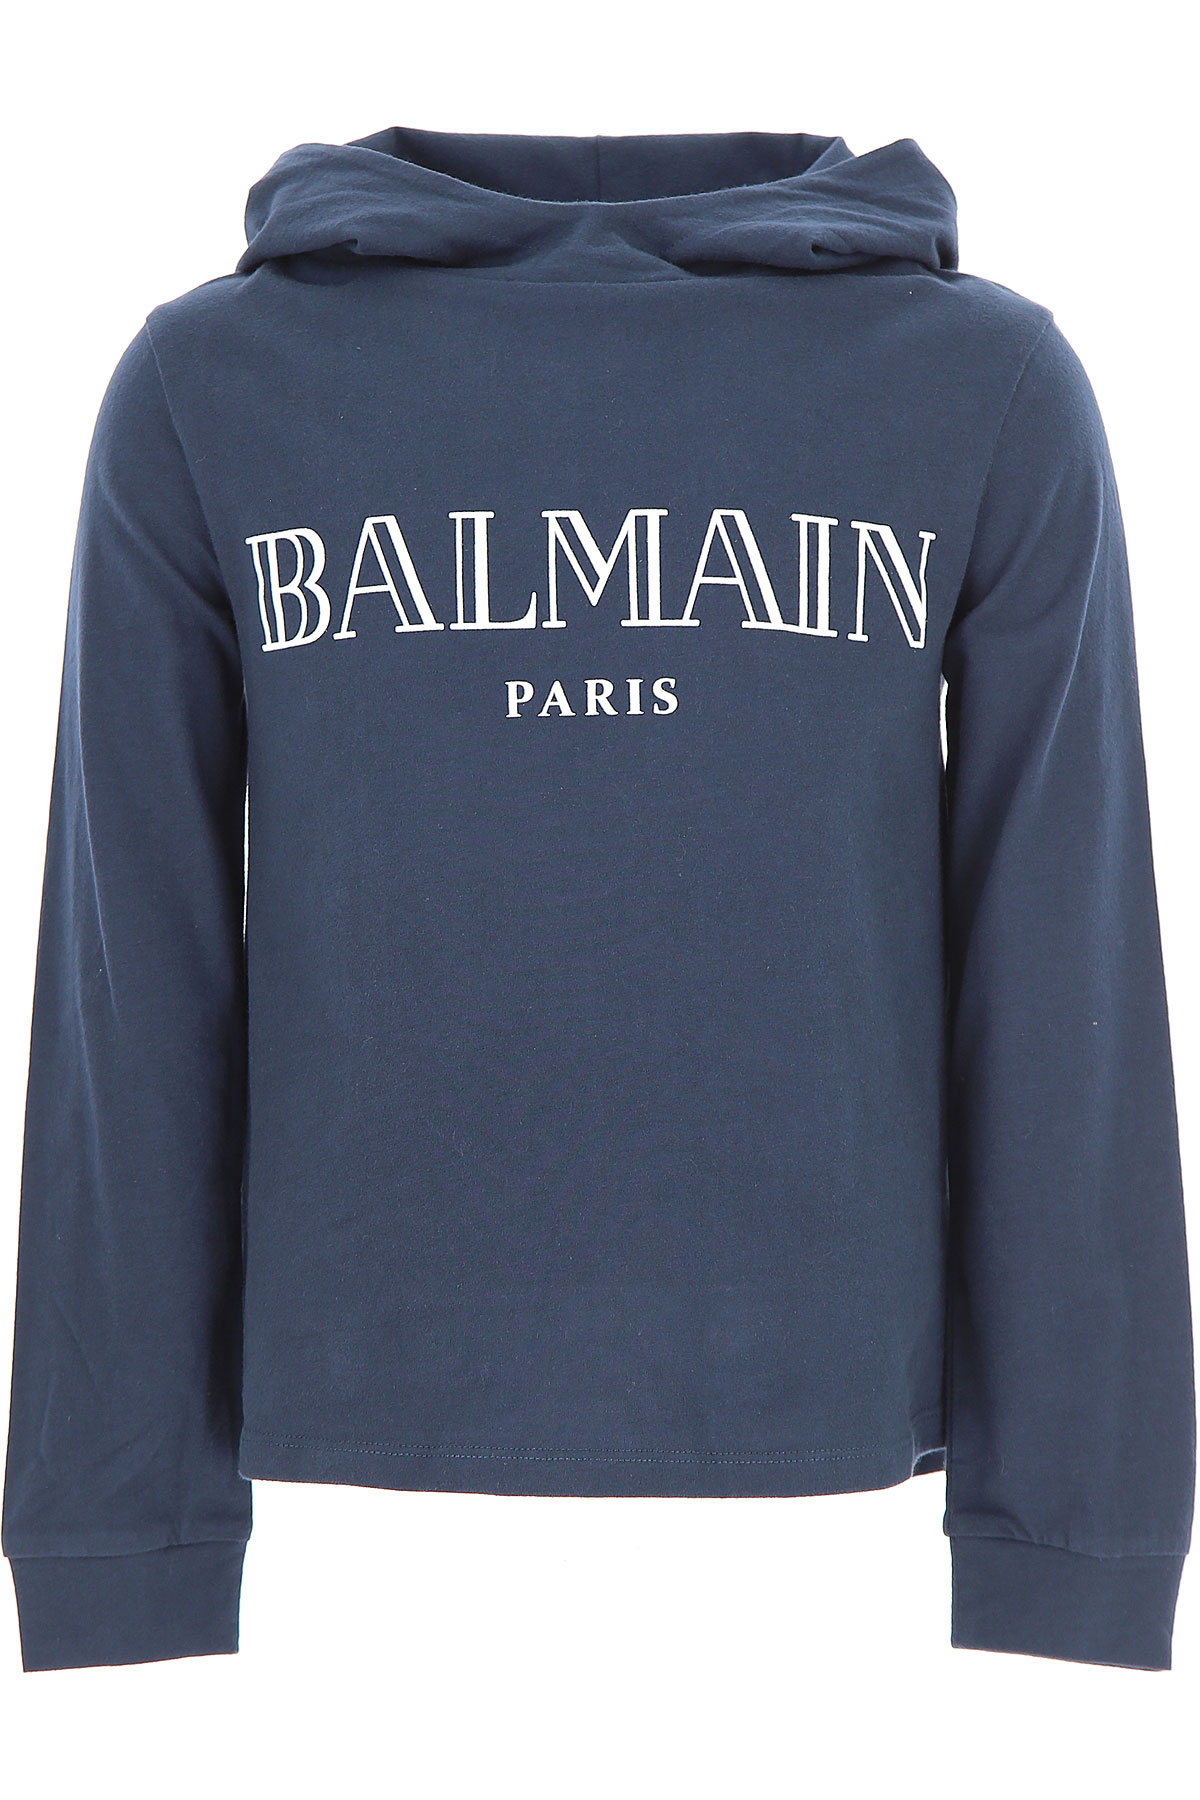 Image of Balmain Kids T-Shirt for Boys, Blue Navy, Cotton, 2017, 10Y 14Y 8Y